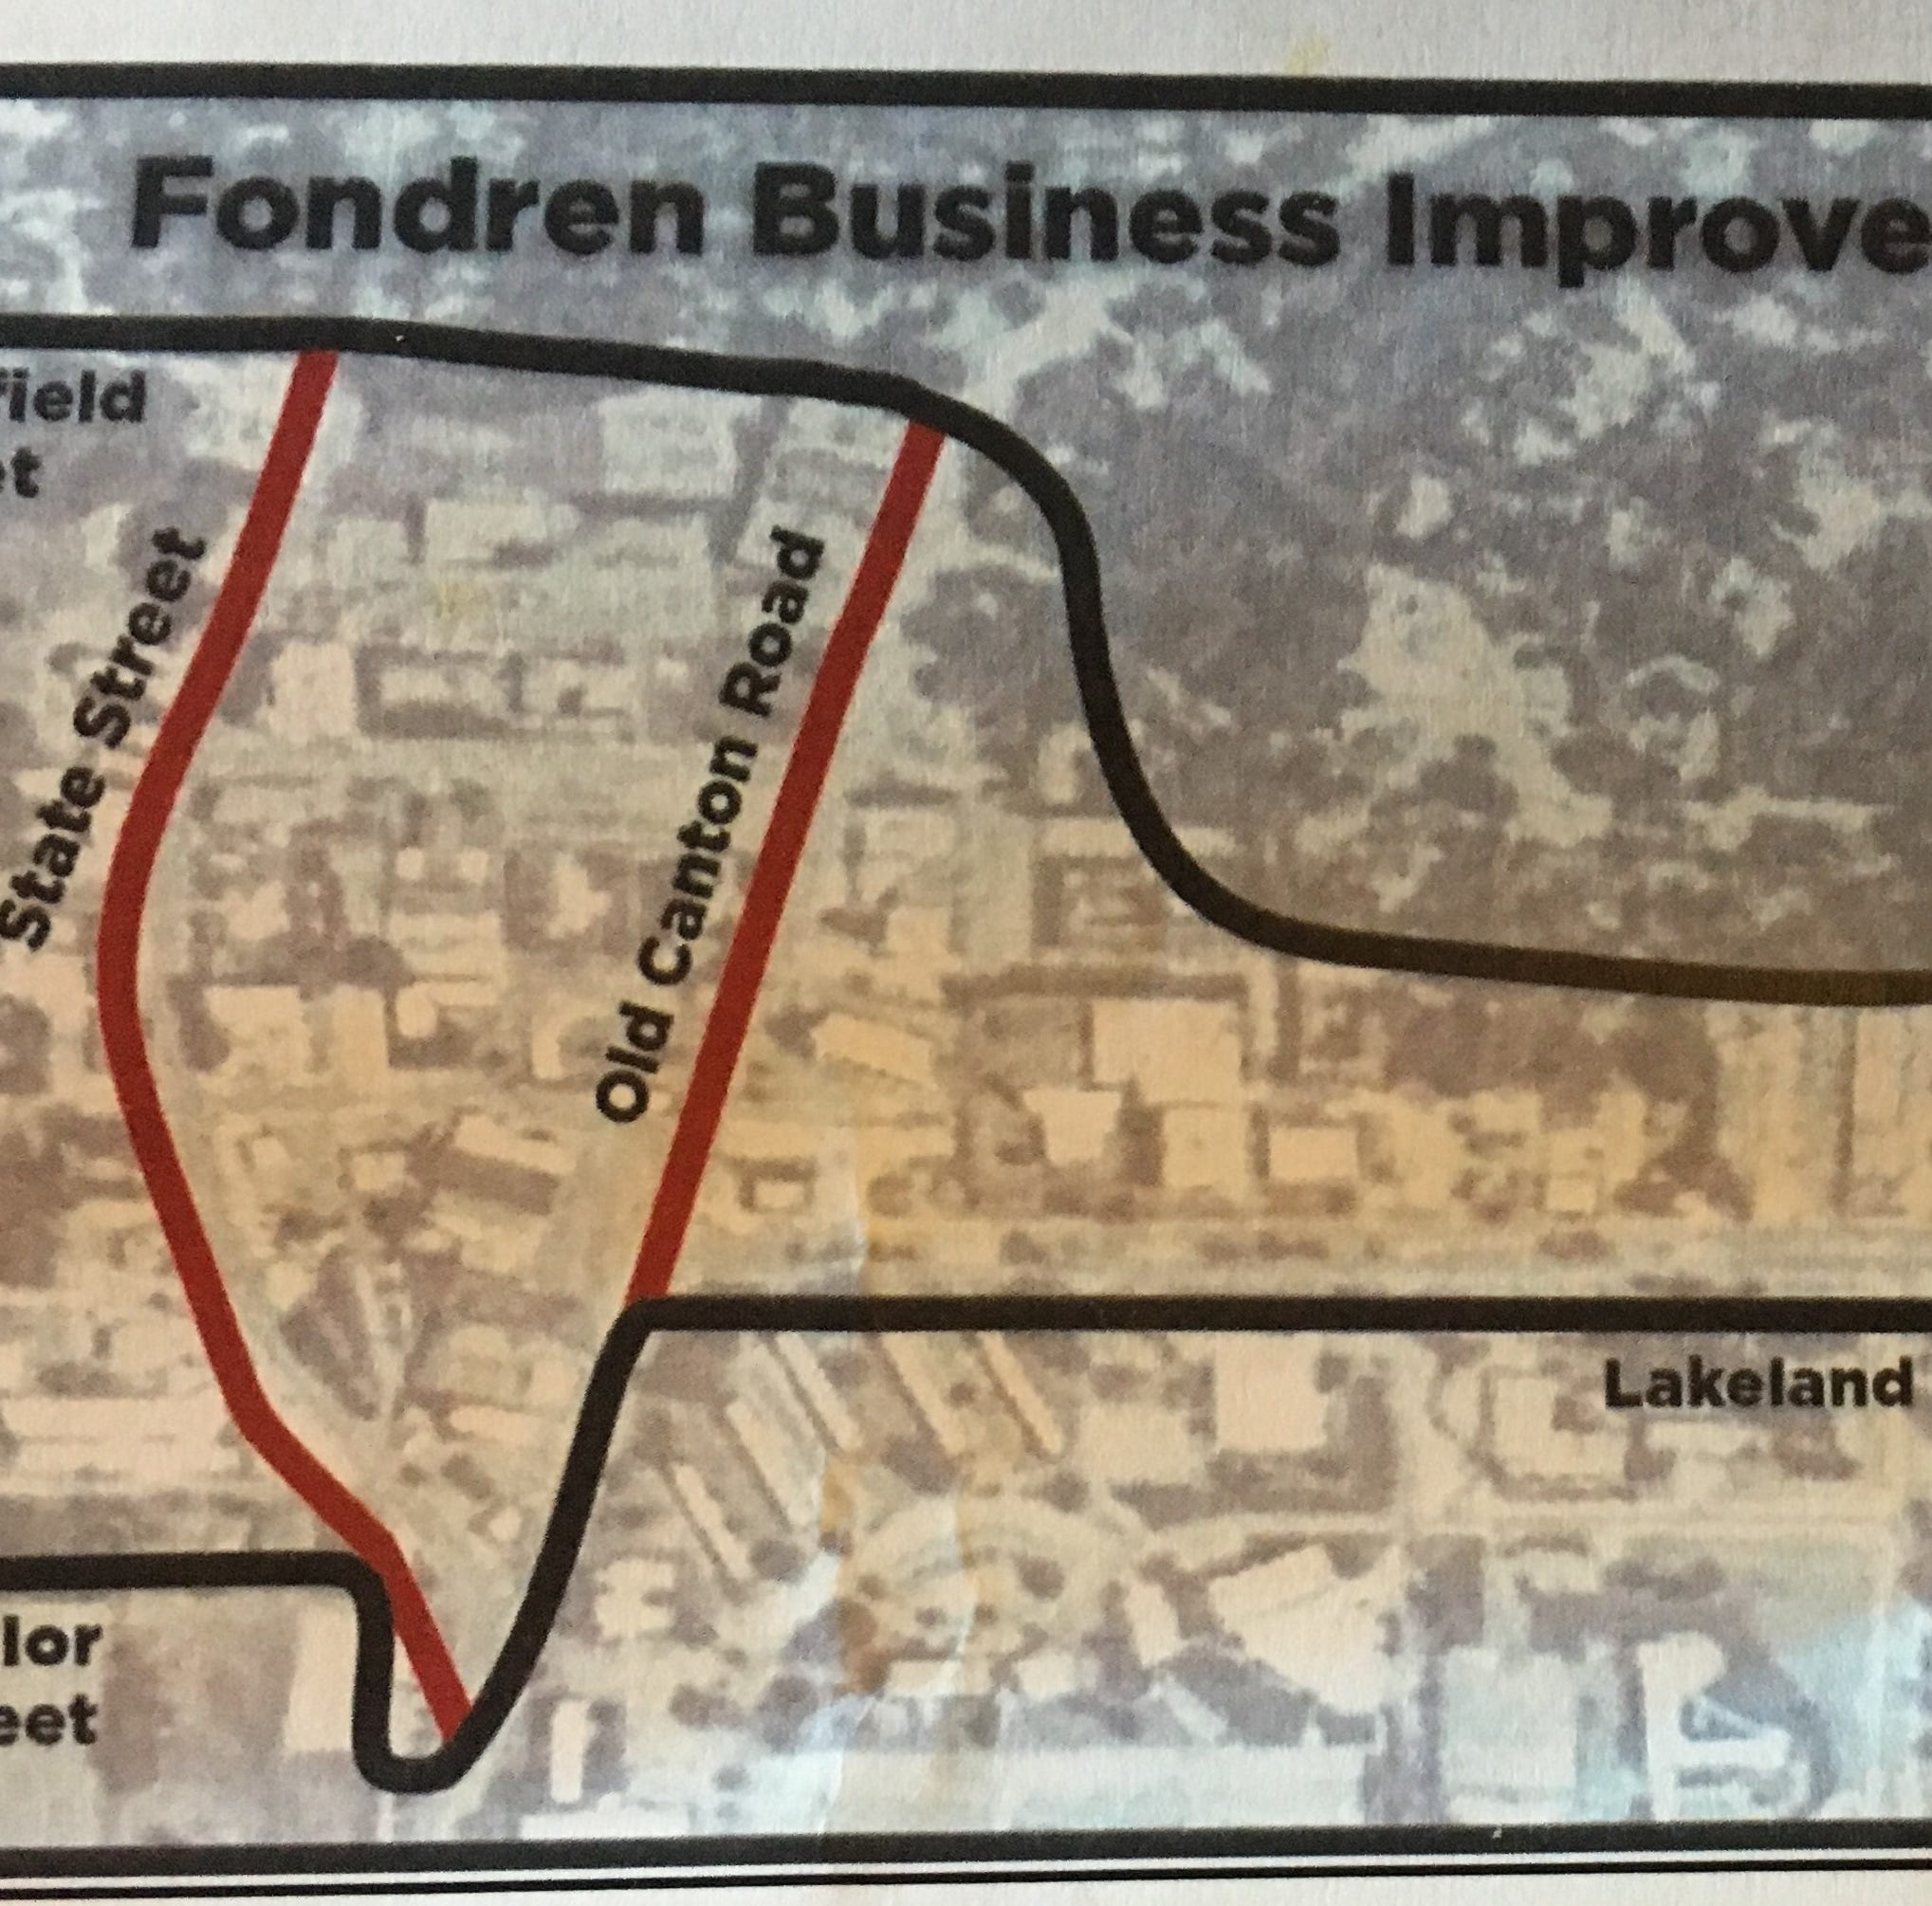 A Fondren Business Improvement District would add a special tax to existing property taxes businesses in the district already receive. The money would be funneled into upgrades to the district area.